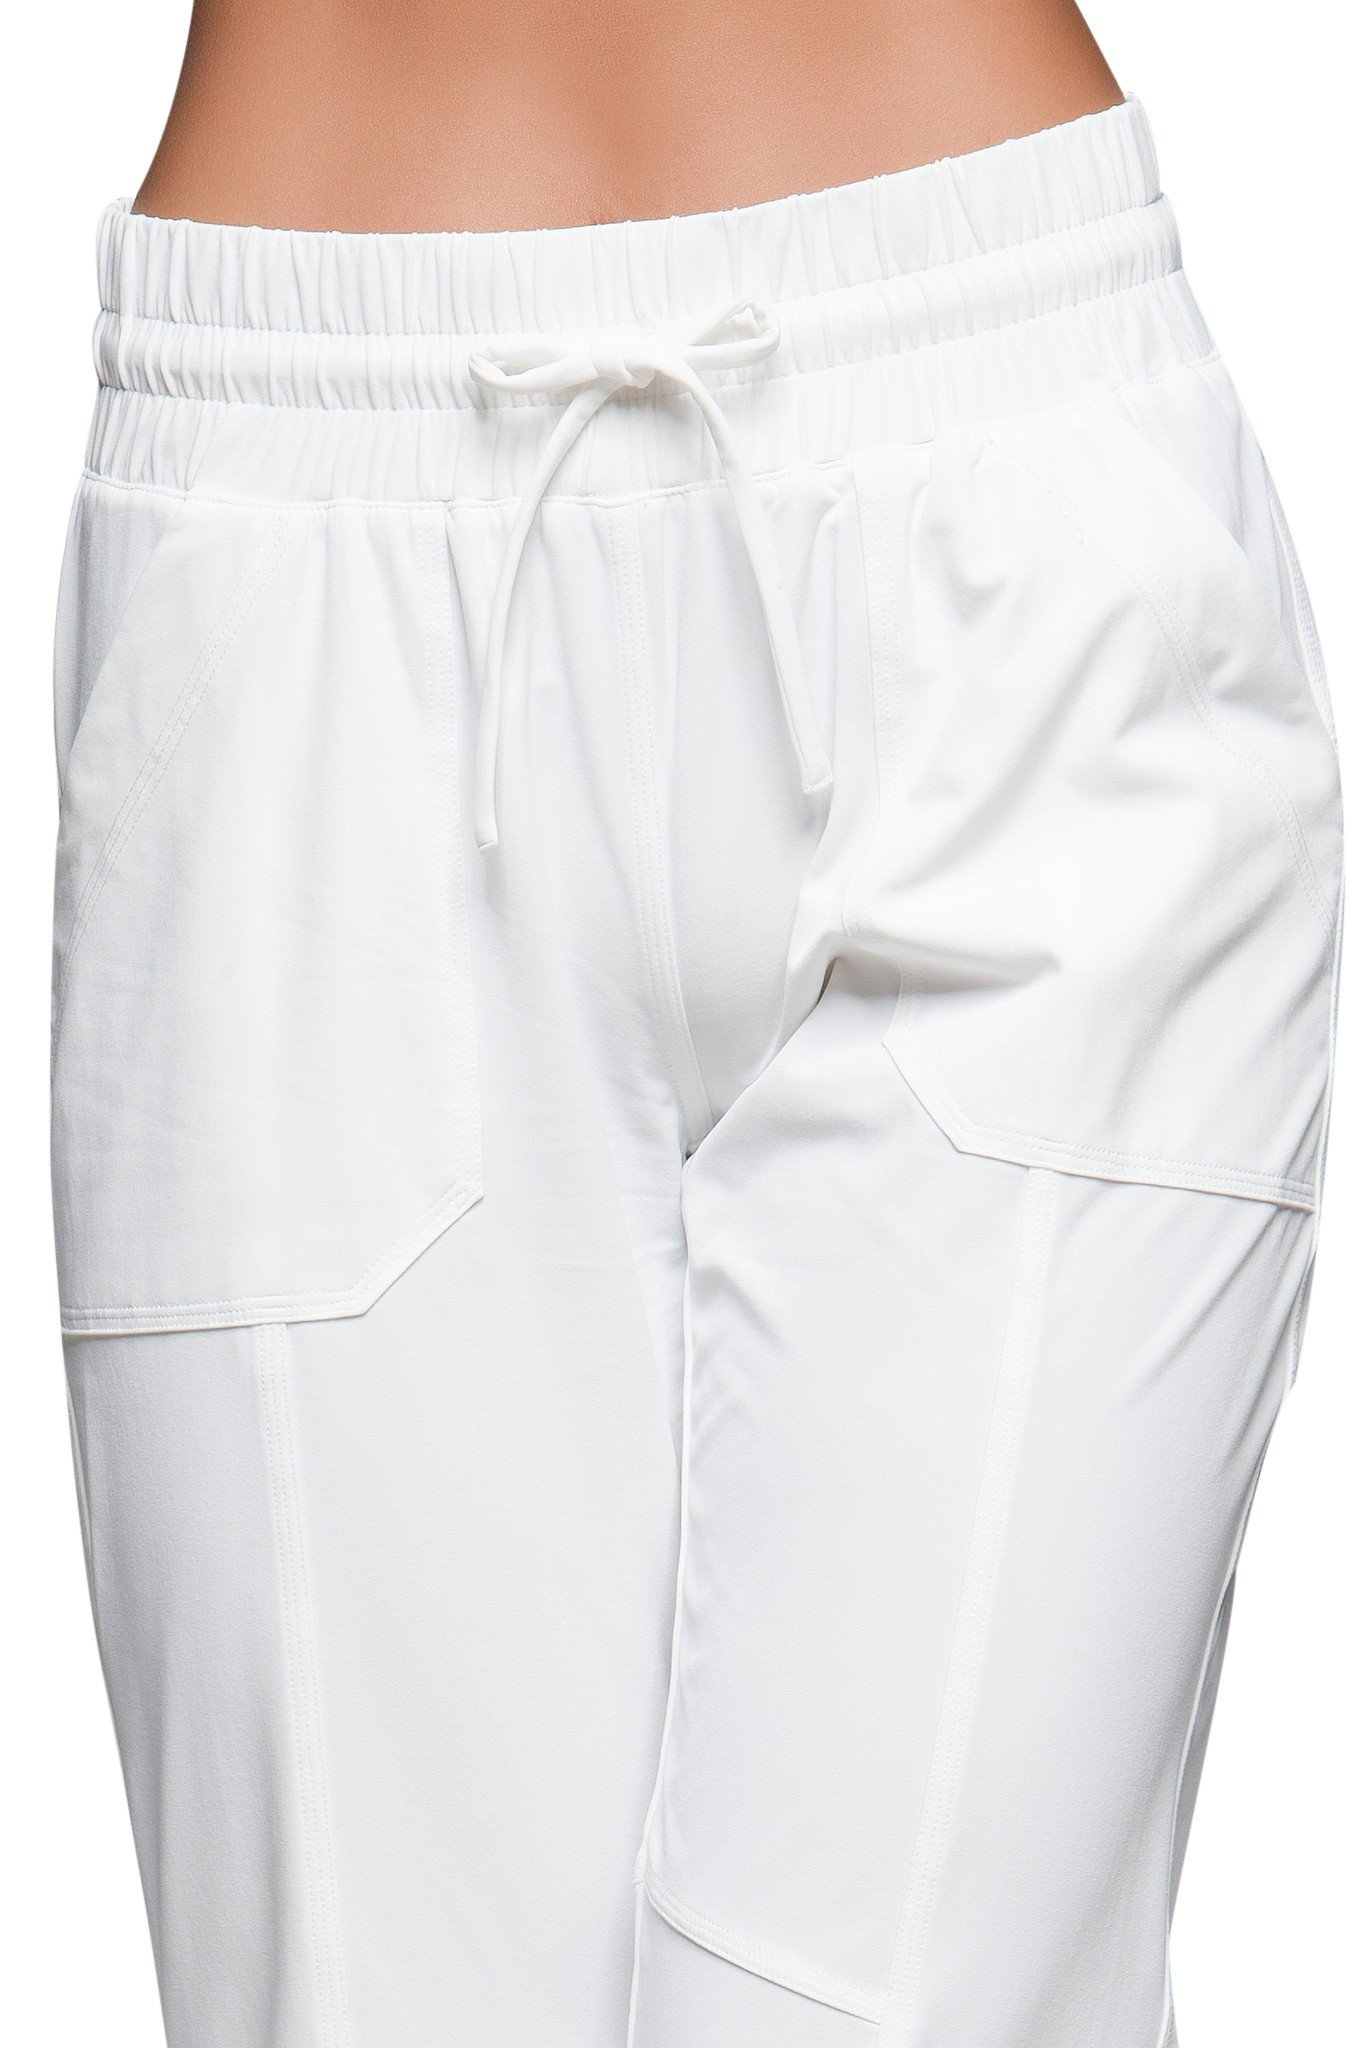 TITIKA Women's Yoga Leisure Pants Great for Casual and Training at the Gym (4, White) by TITIKA ACTIVE COUTURE